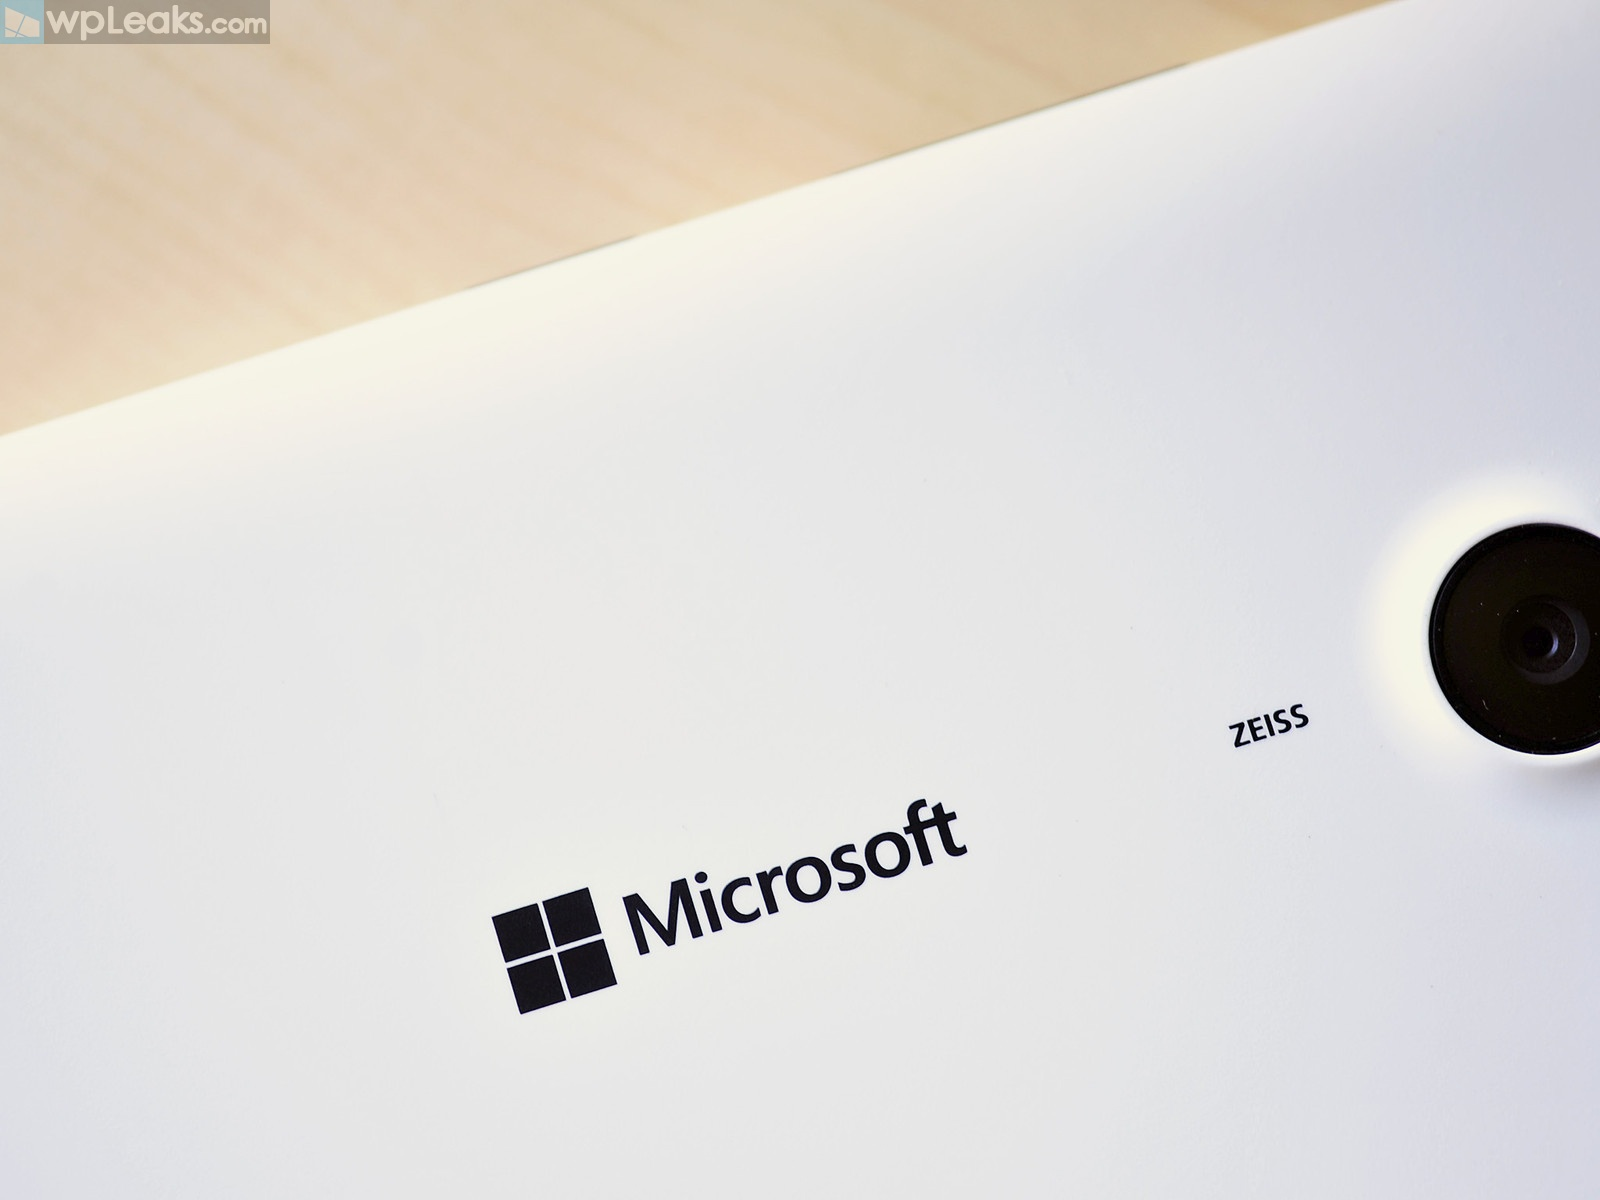 Microsoft-logo-phone-back